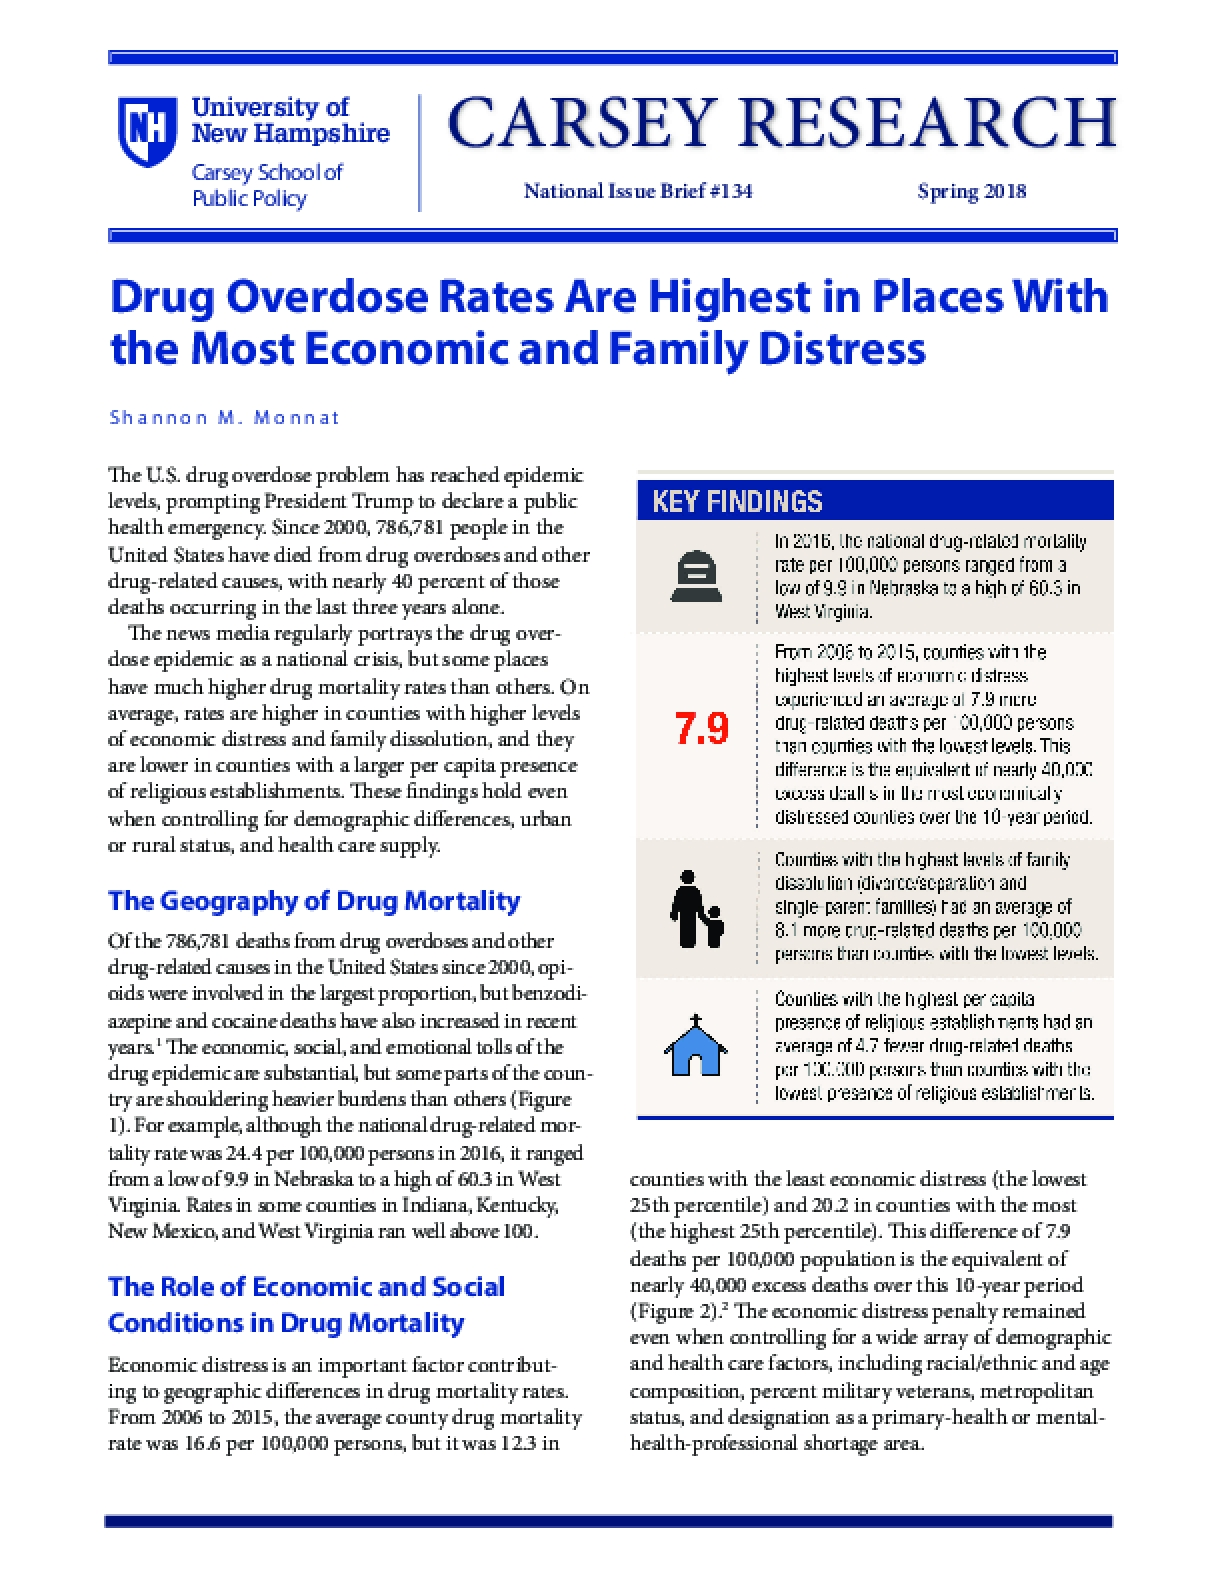 Drug Overdose Rates Are Highest in Places With the Most Economic and Family Distress